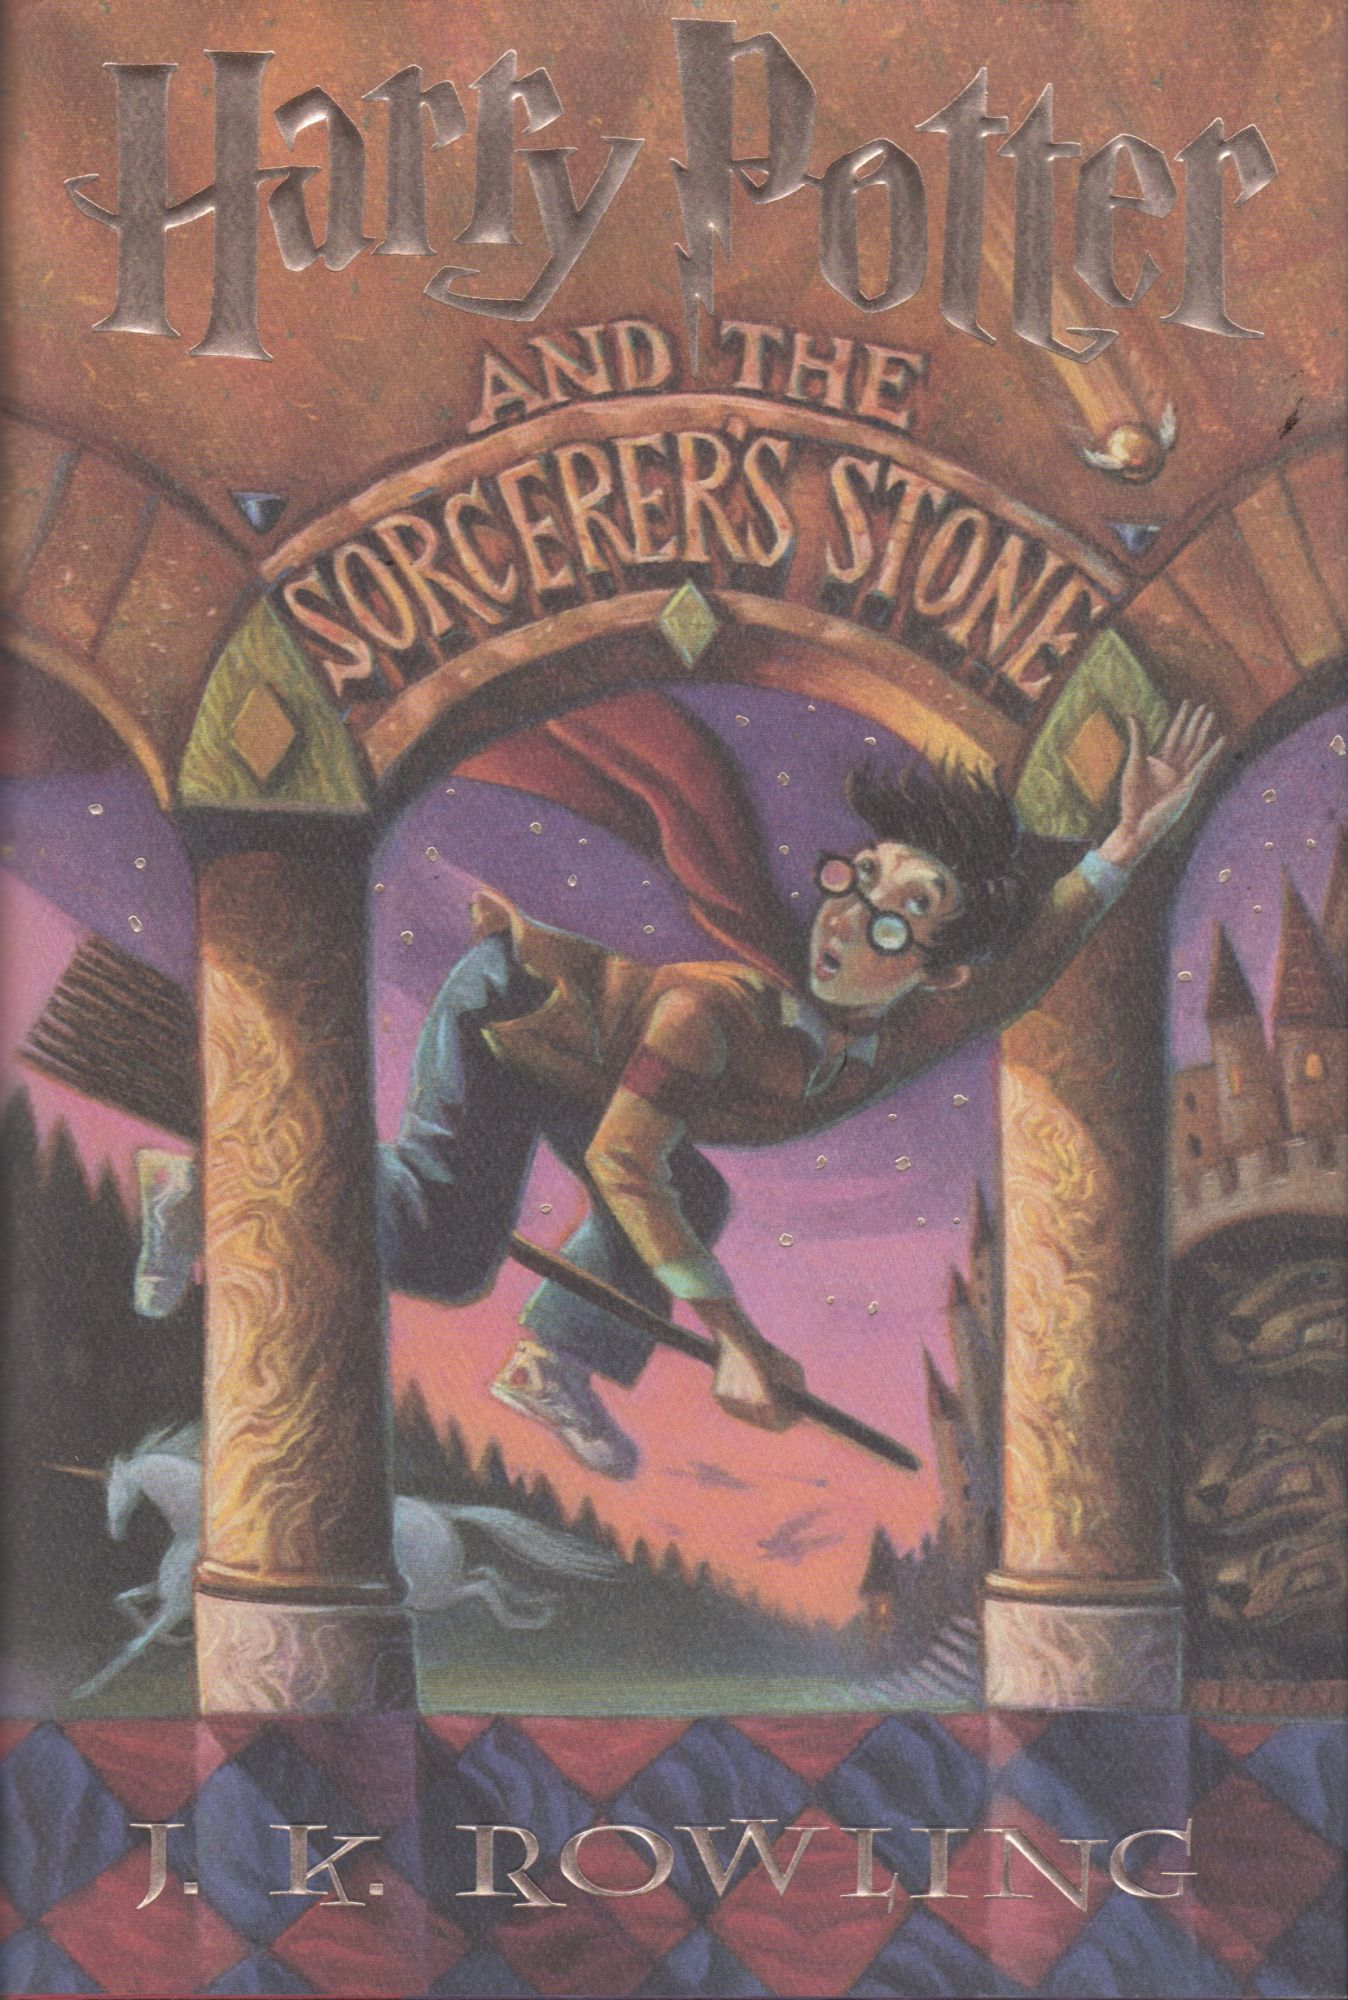 Harry Potter and the Sorcerer's Stone (Signed)